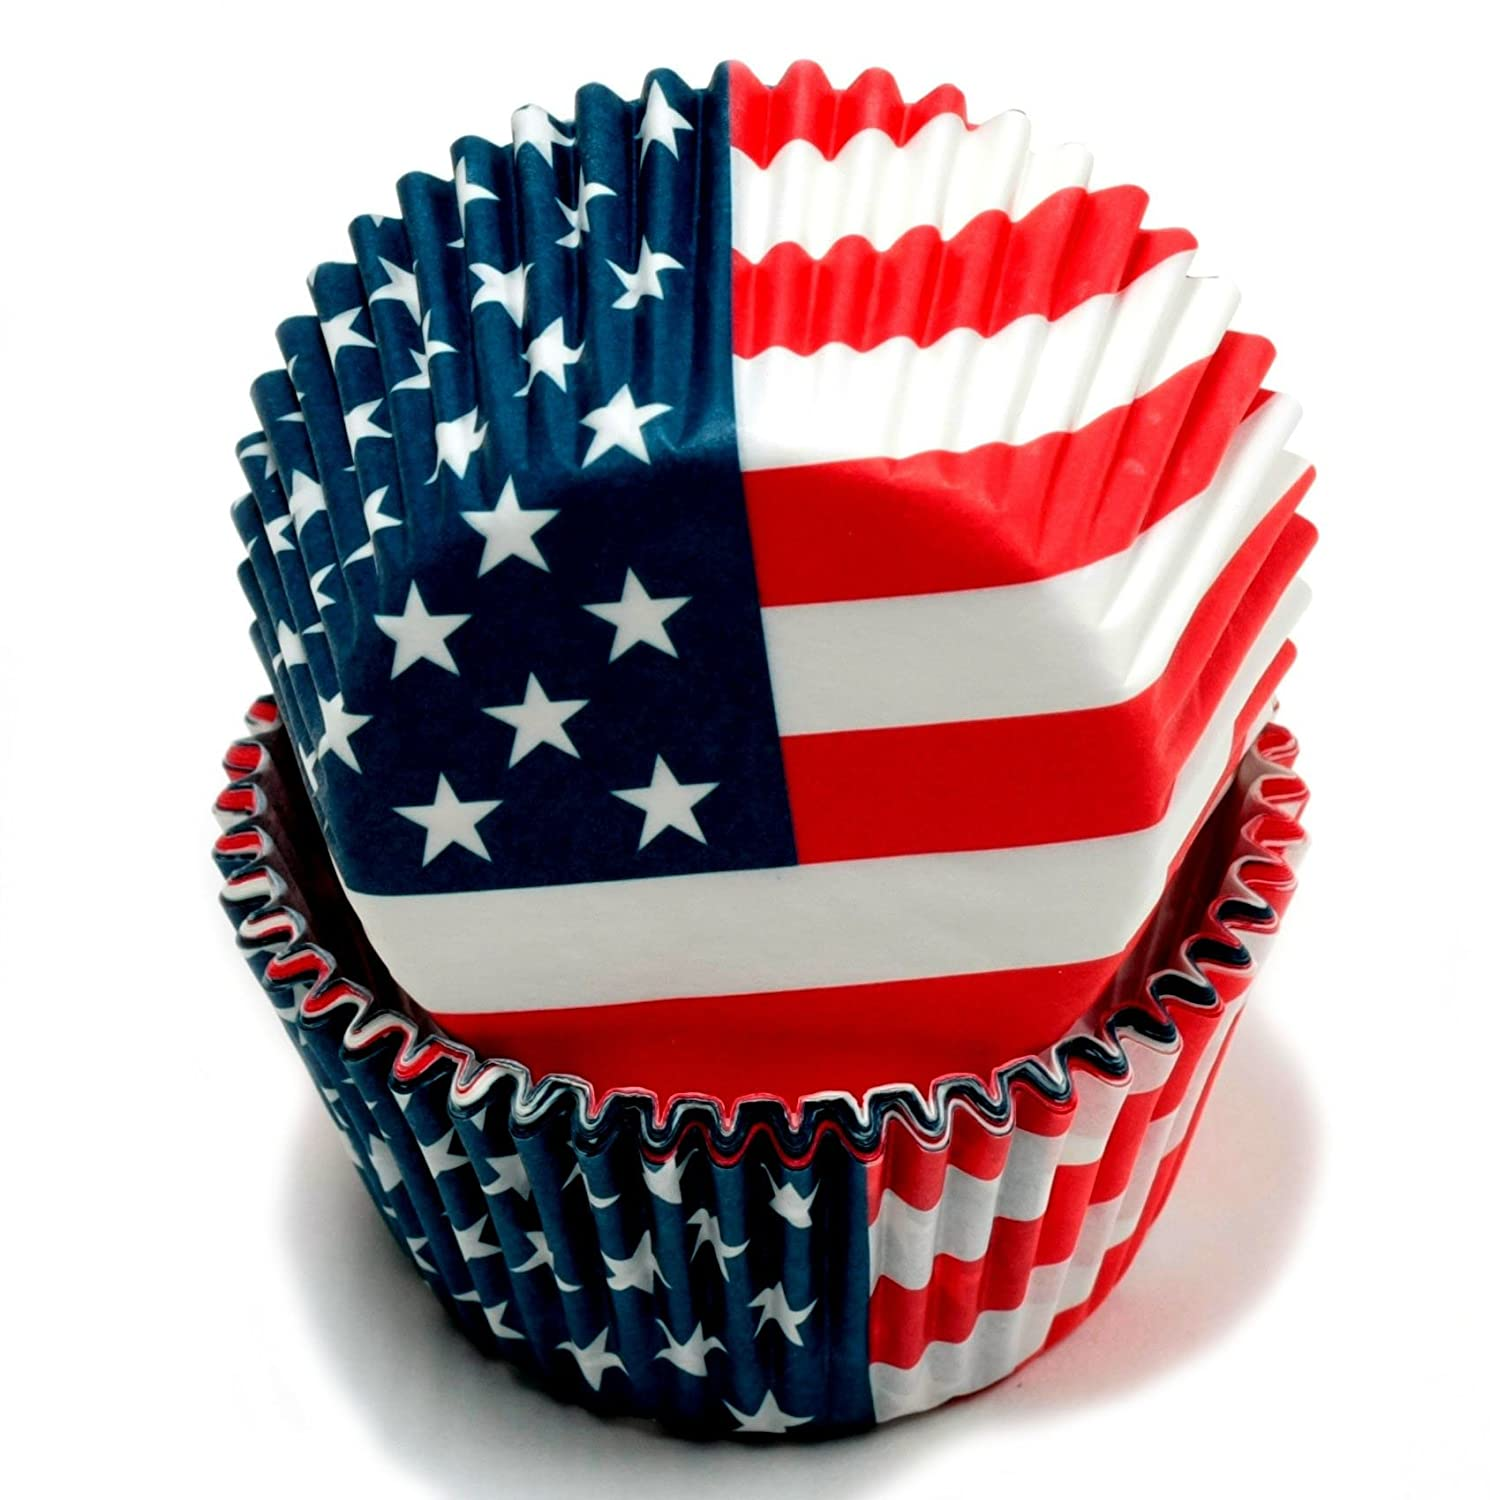 American Flag Cupcake liners - patriotic 4th of July and Memorial Day decor and entertaining supplies.